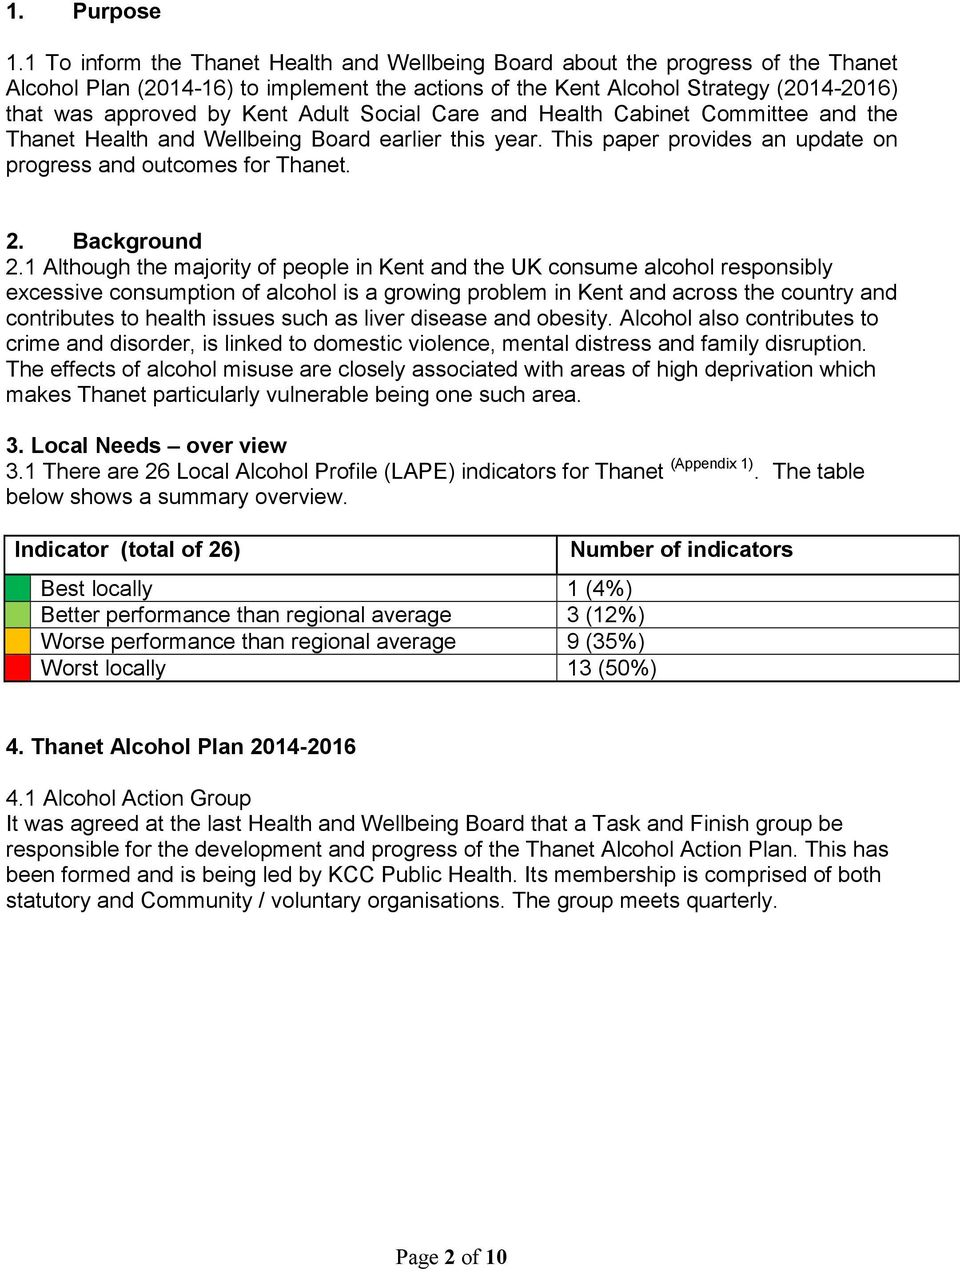 Adult Social Care and Health Cabinet Committee and the Thanet Health and Wellbeing Board earlier this year. This paper provides an update on progress and outcomes for Thanet. 2. Background 2.